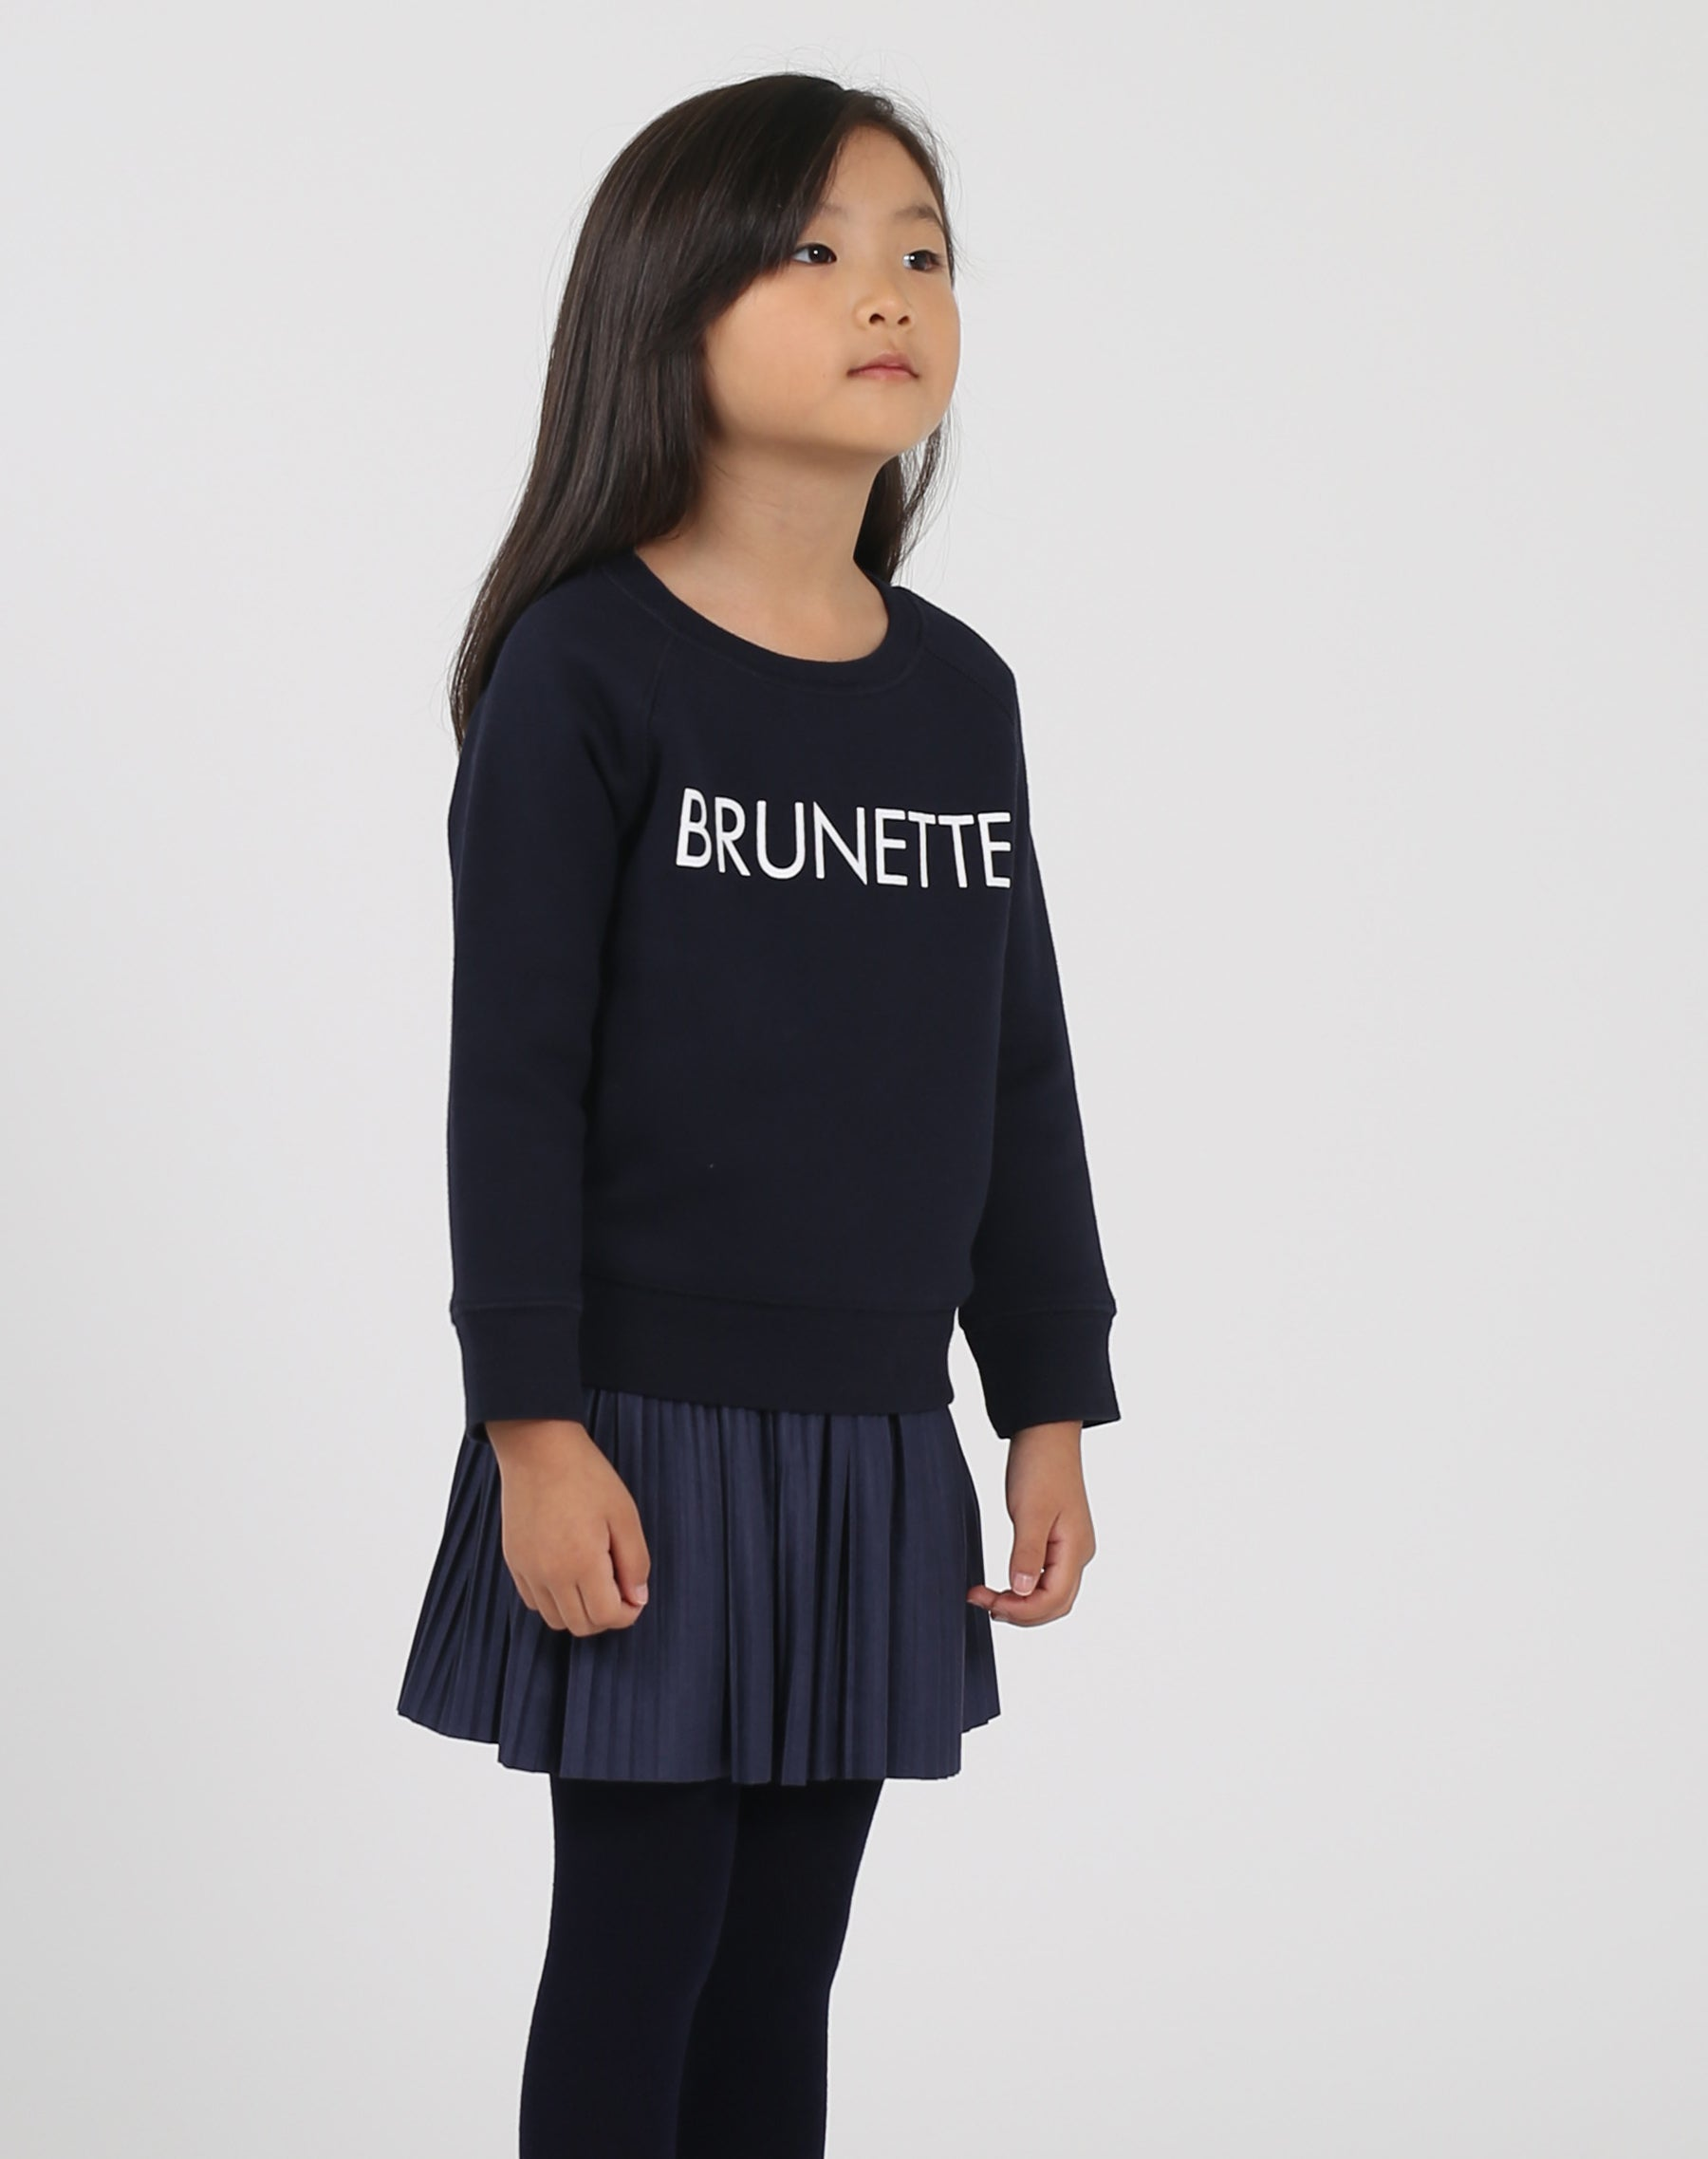 Photo of the side of the Brunette Little Babes classic crew neck sweatshirt in navy by Brunette the Label.